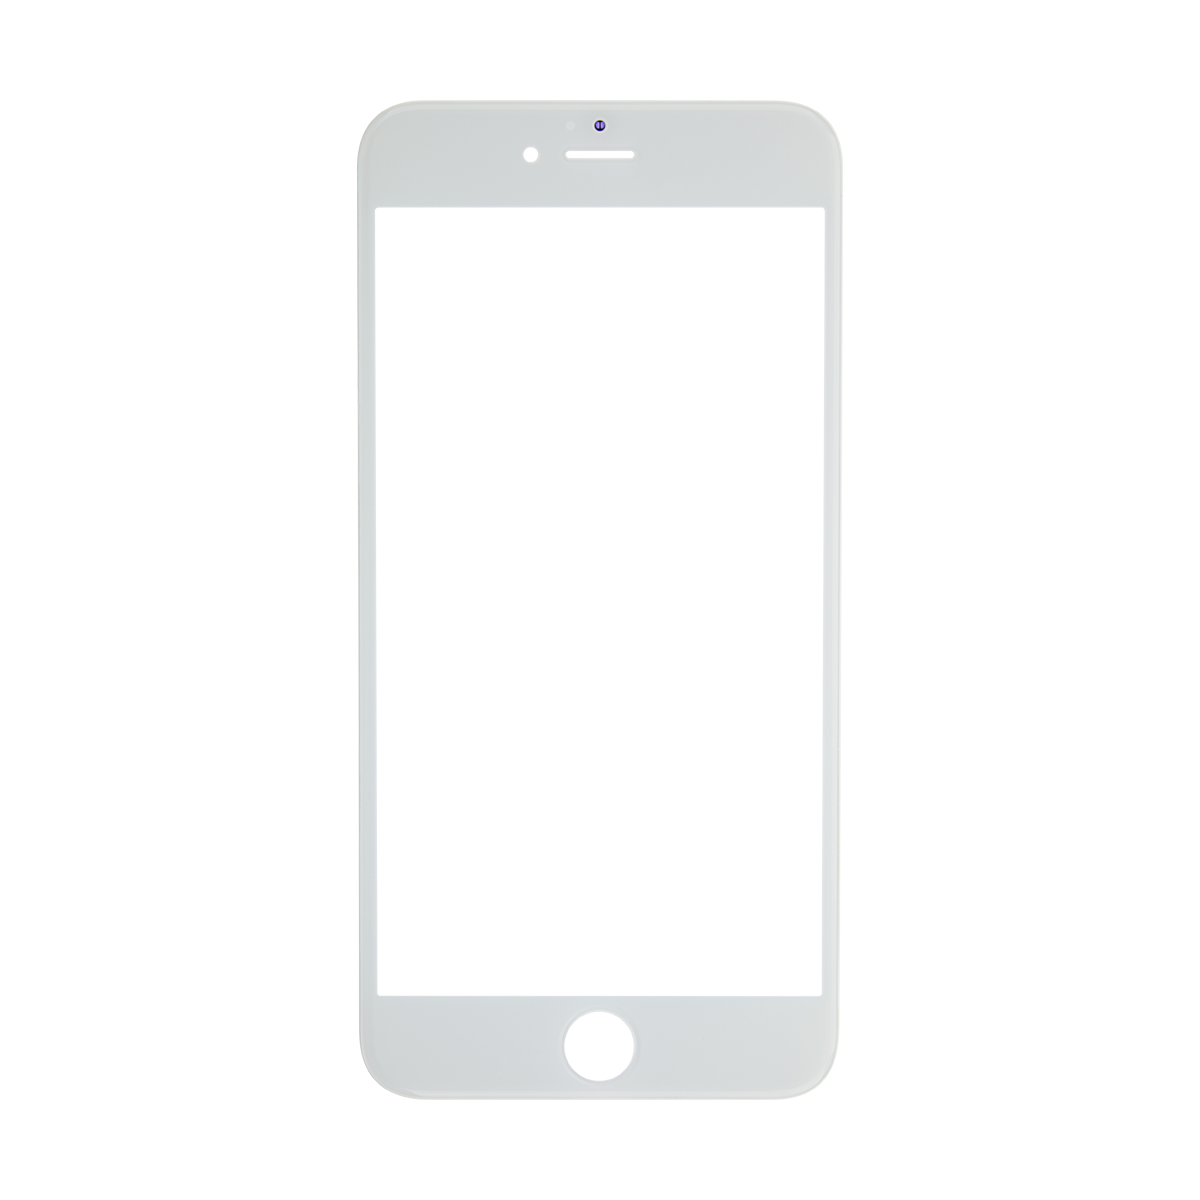 S plus white glass. Iphone frame png